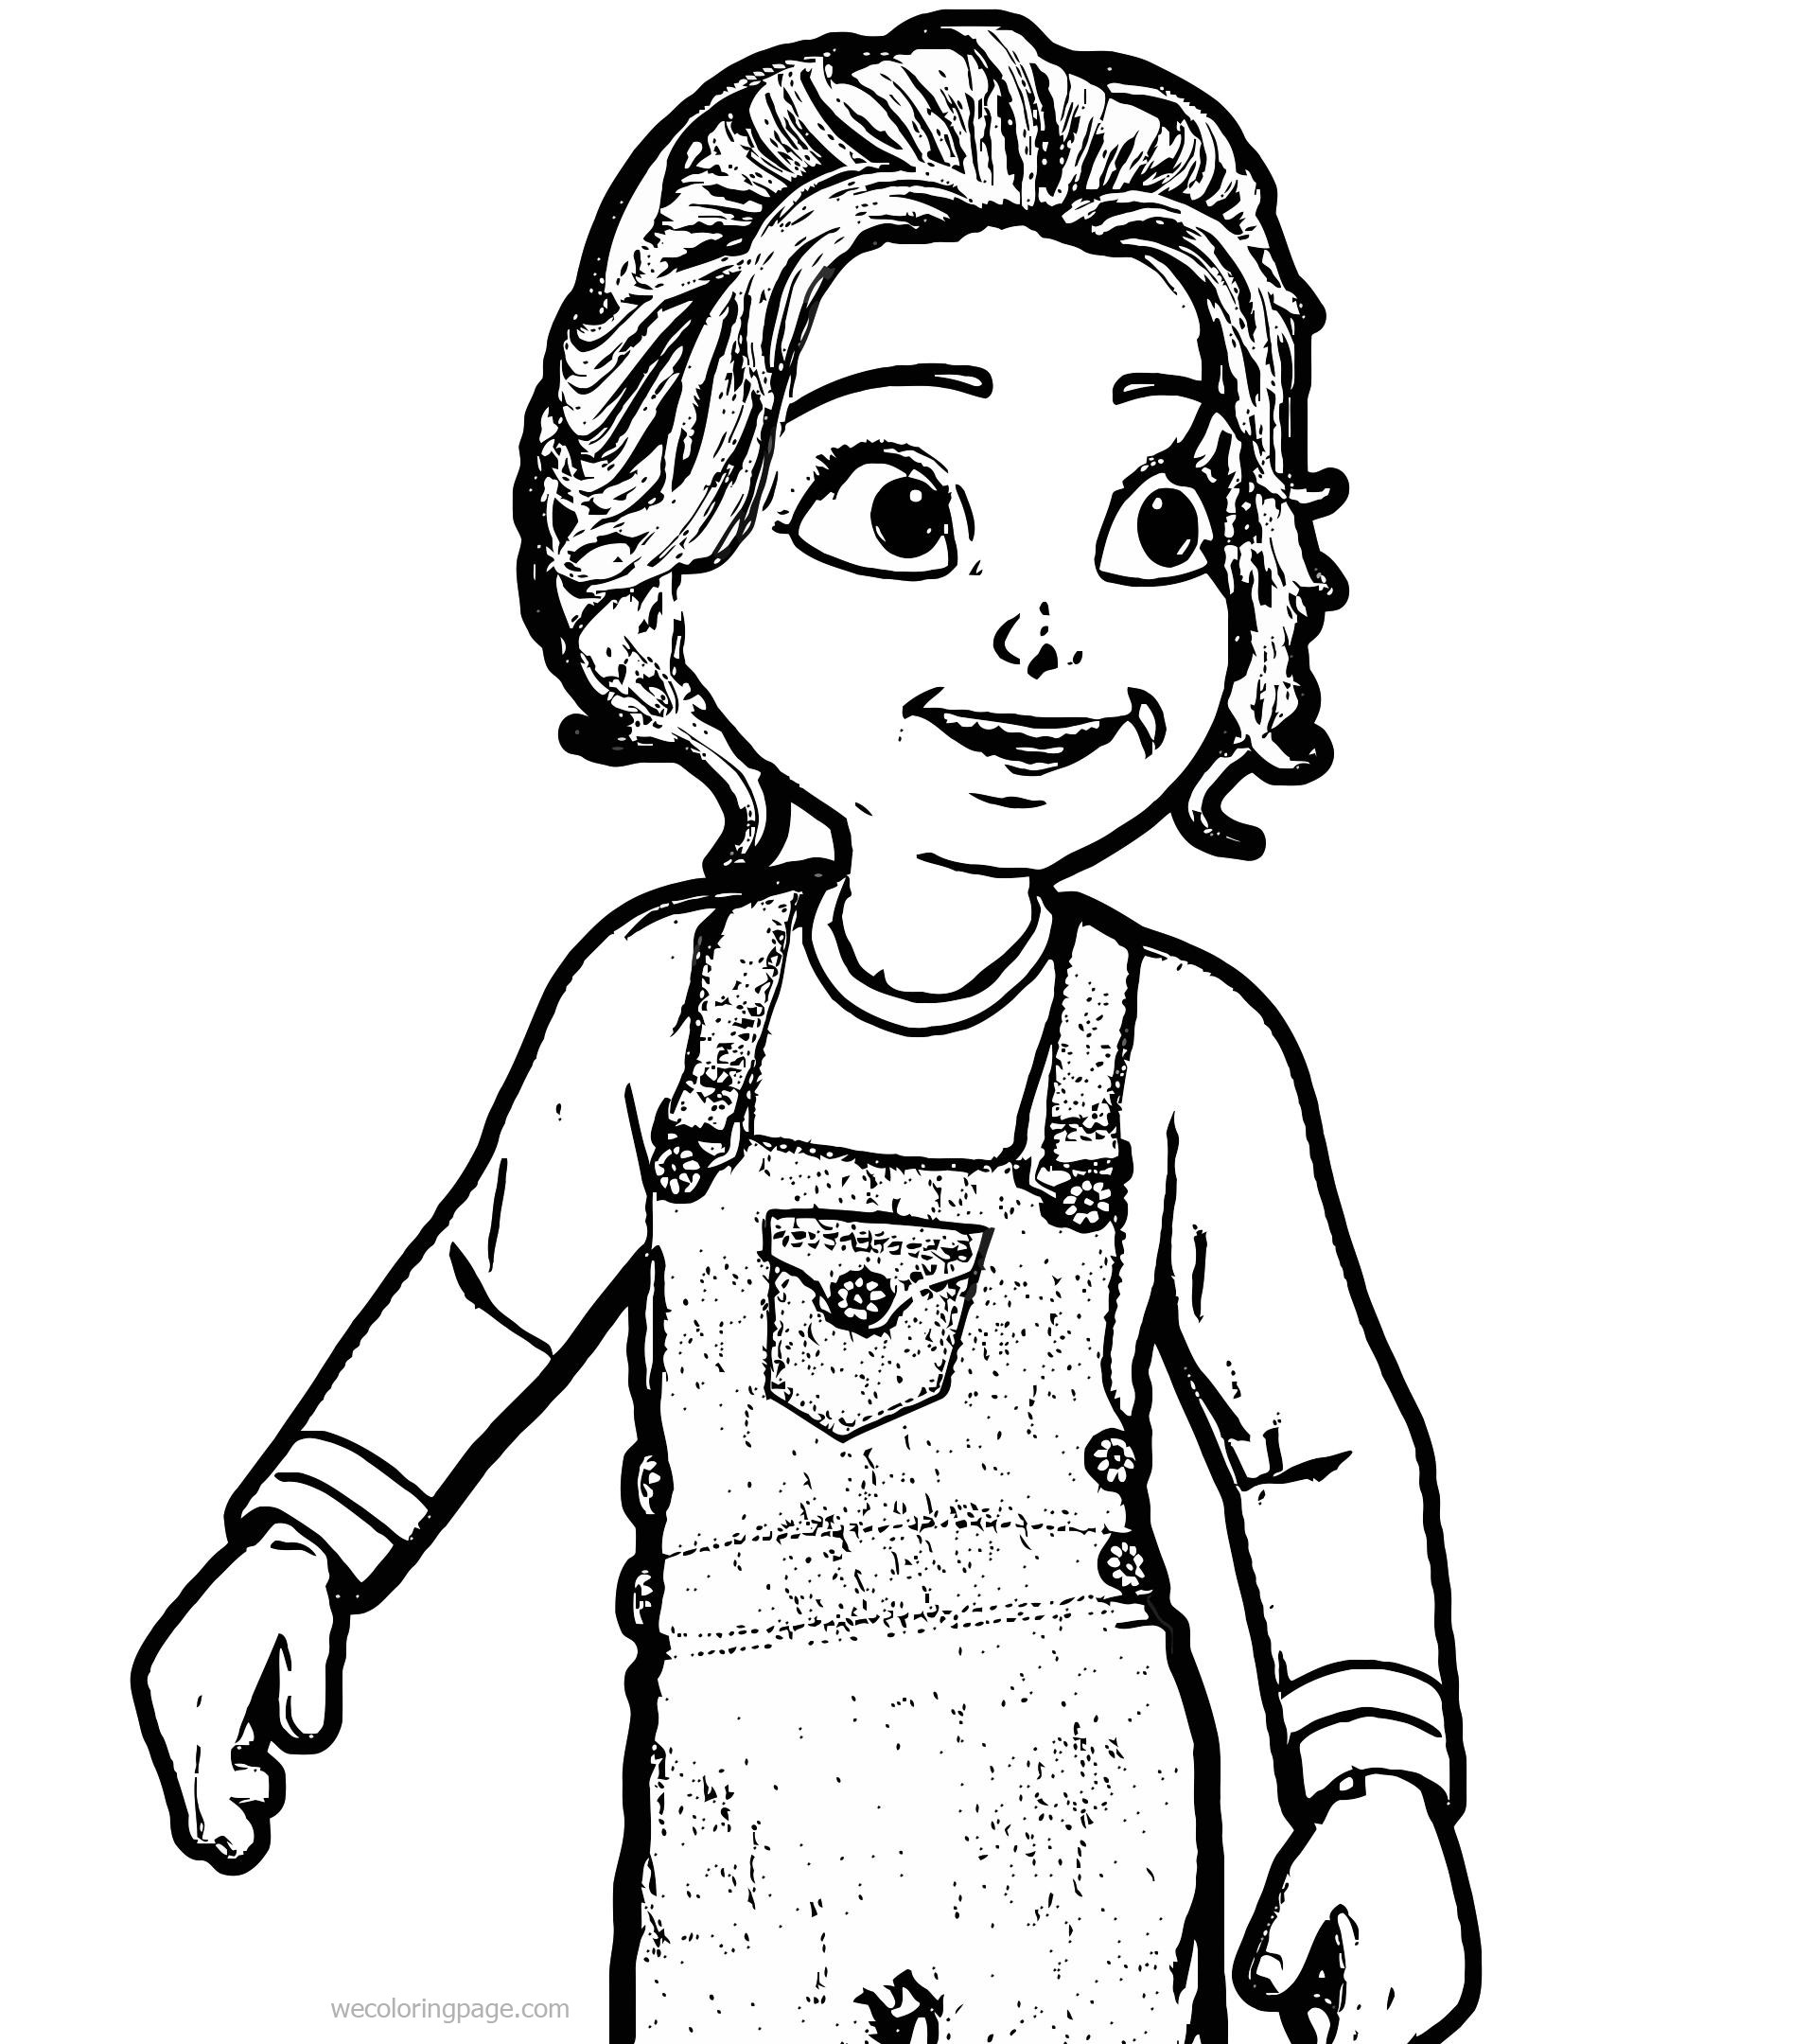 Toon Cute Girl Coloring Page